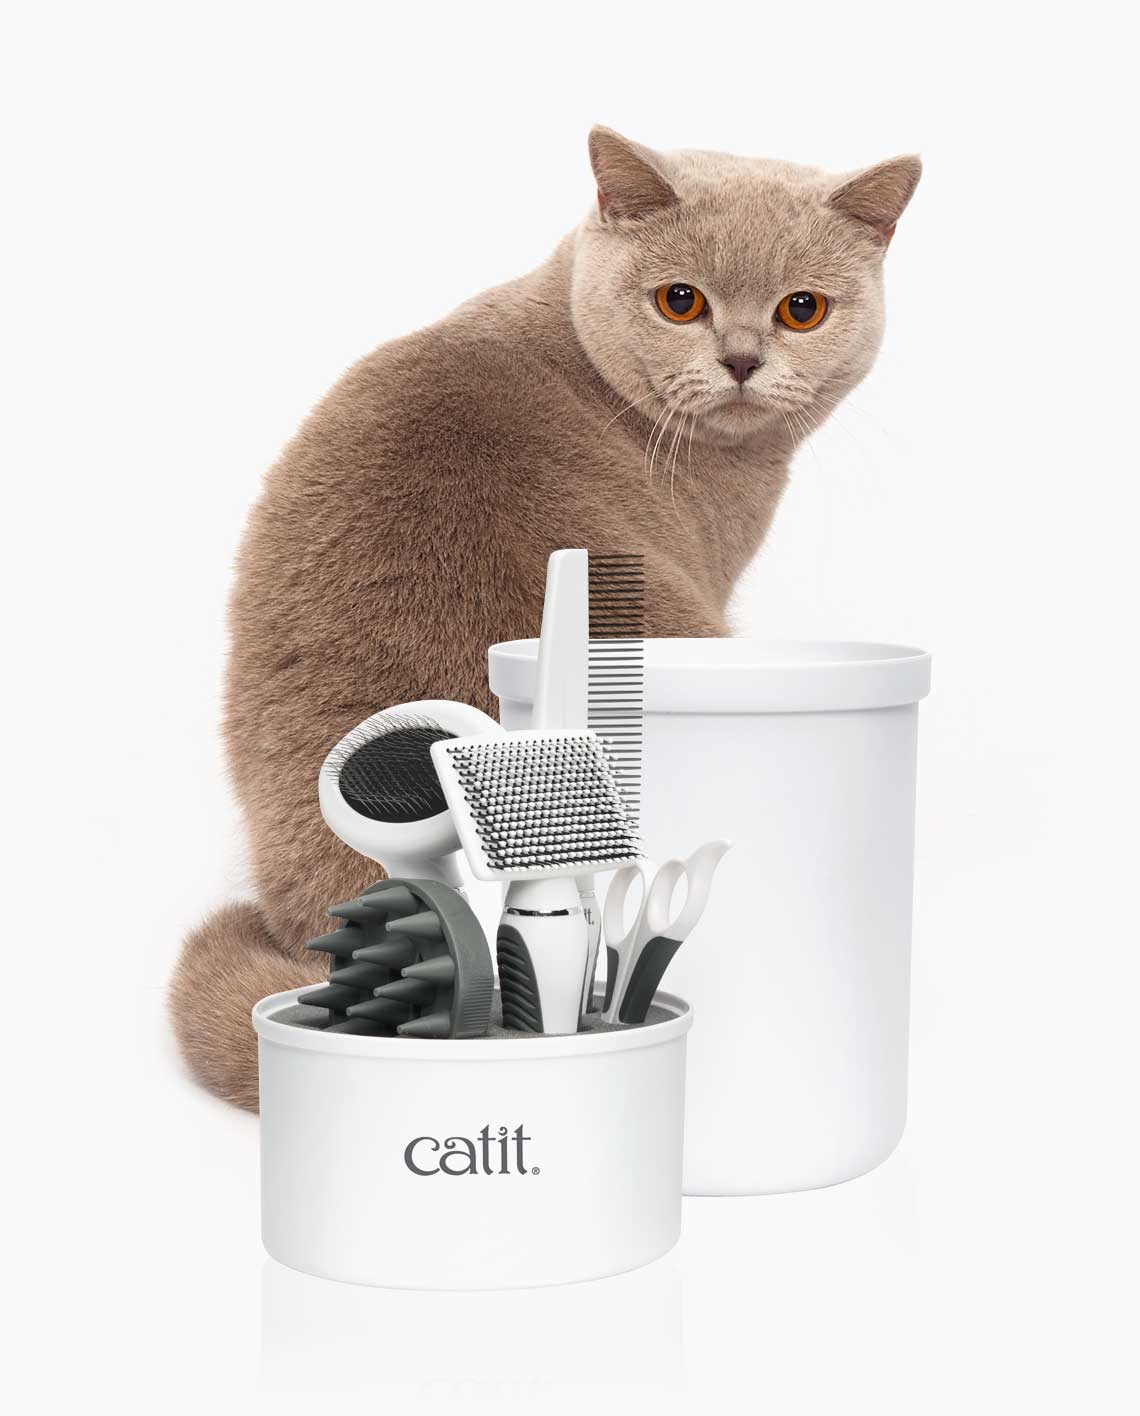 british shorthair cat looking at the grooming kit